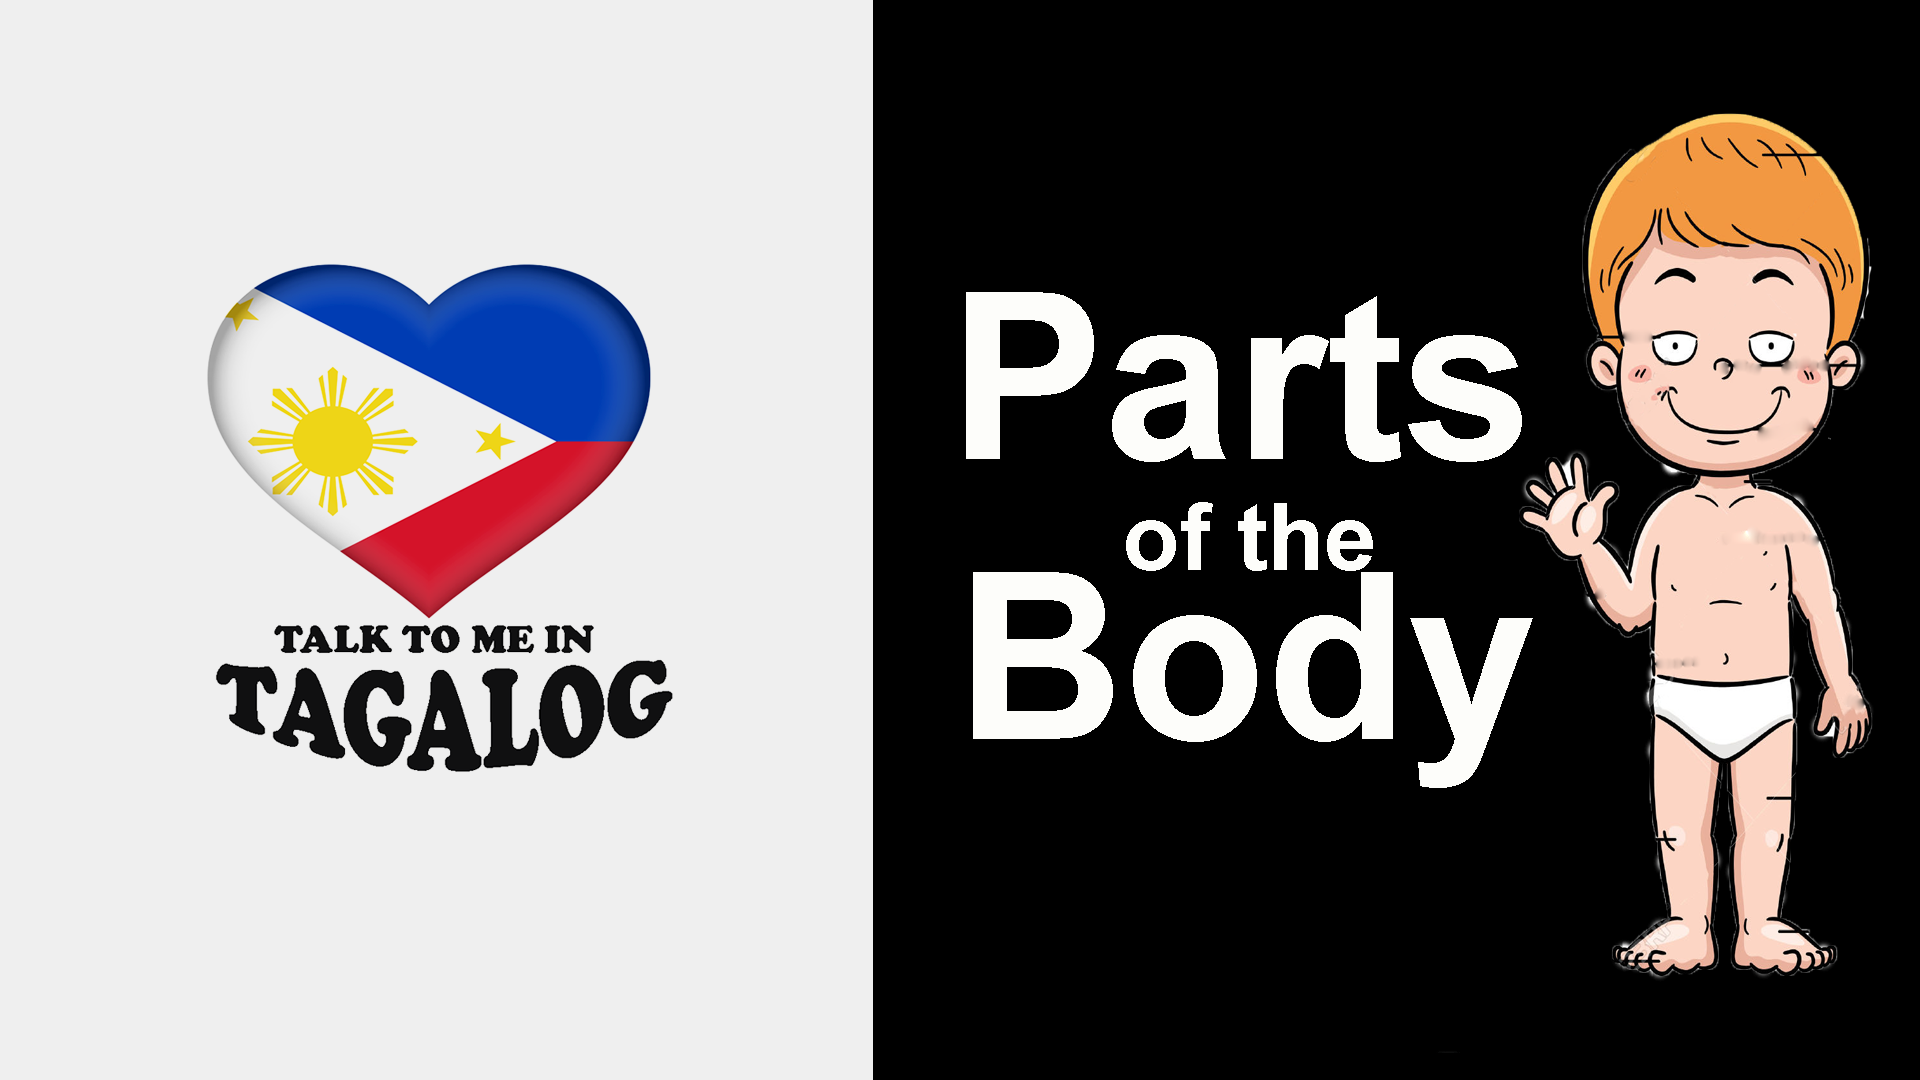 How To Say Parts Of The Body In Filipino Tagalog